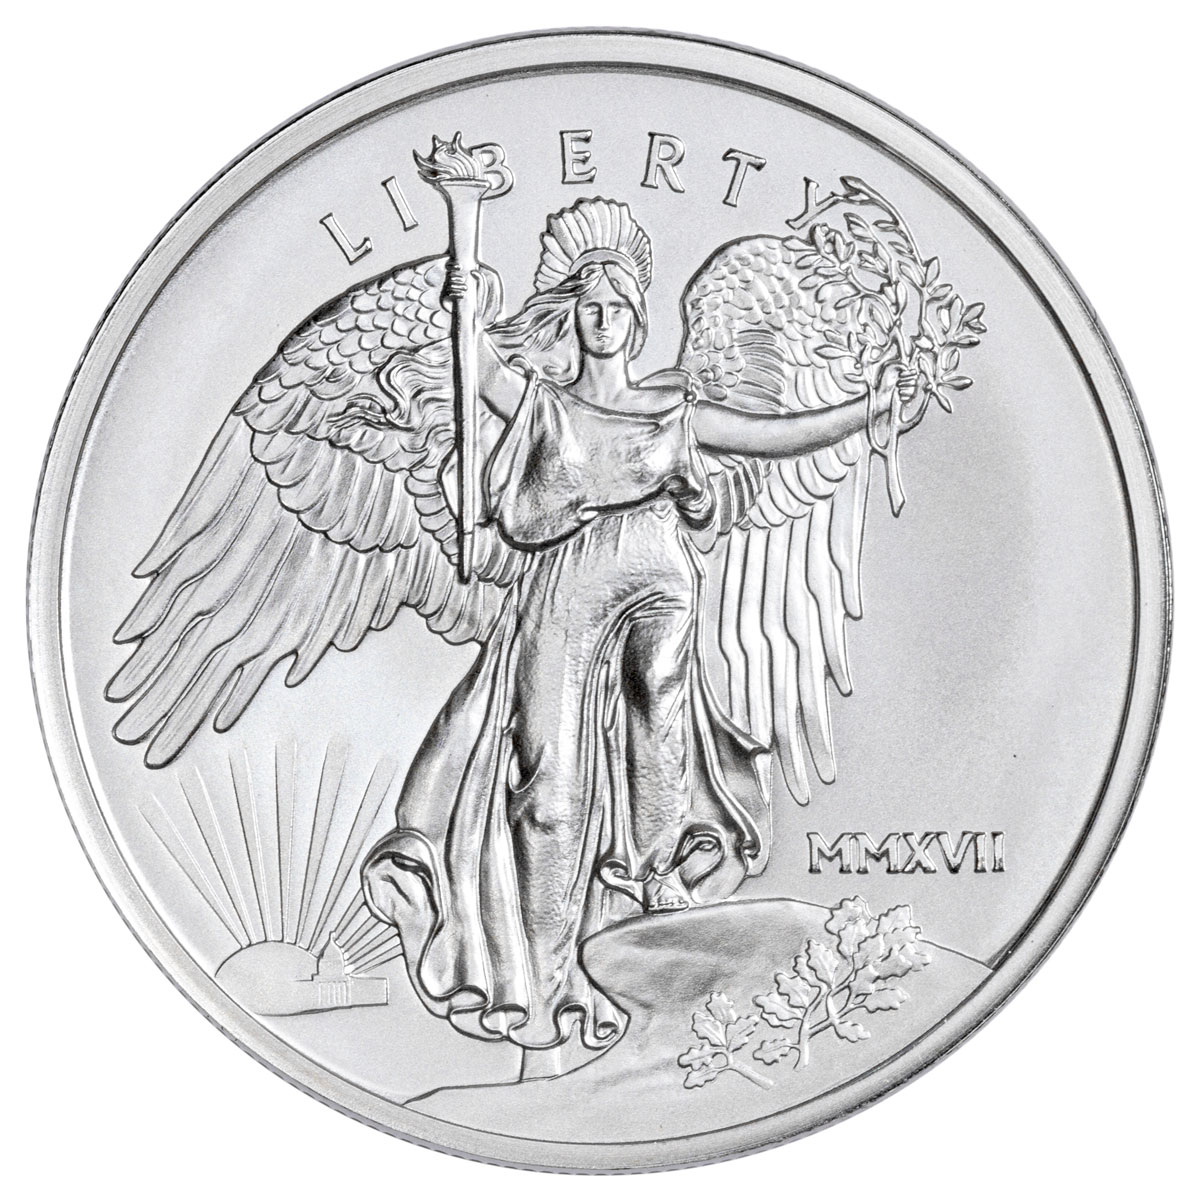 2017 United States Saint Gaudens Winged Liberty 1 Oz